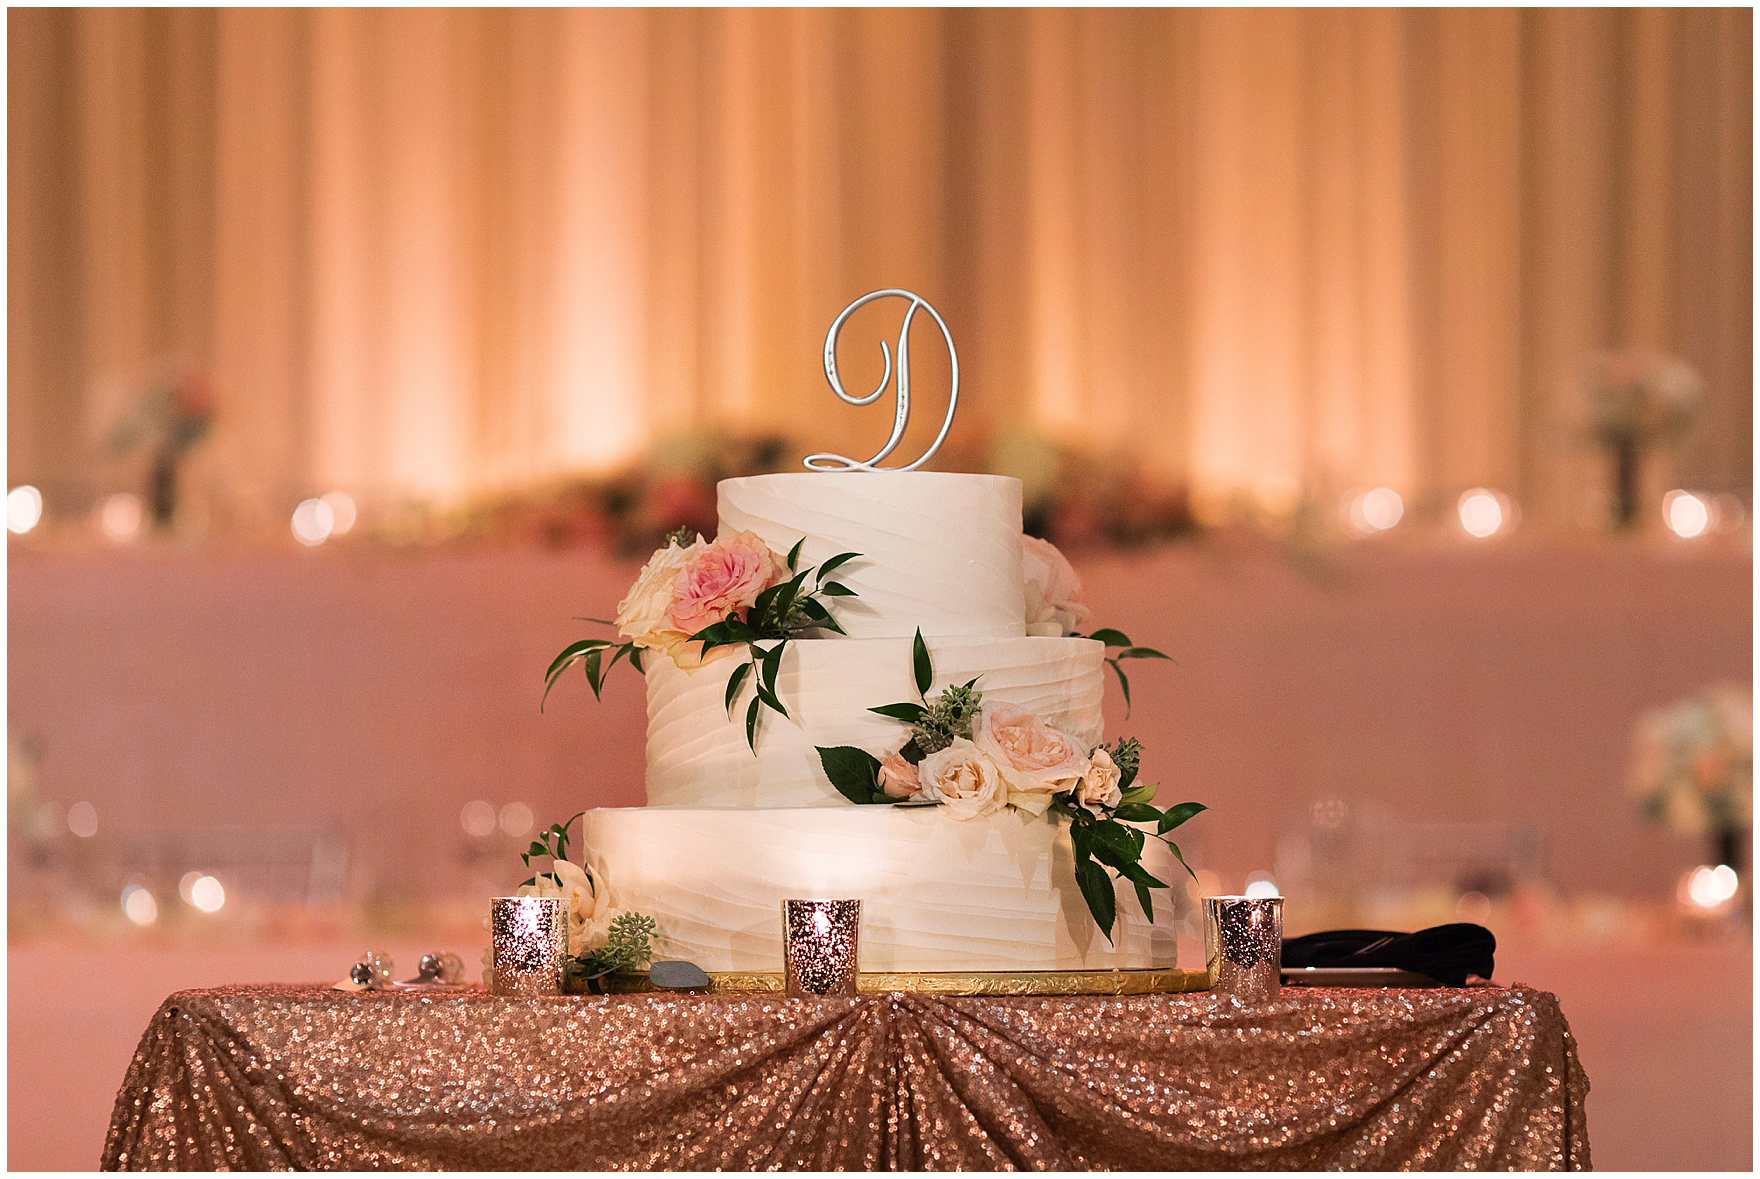 A three tiered wedding cake is the centerpiece for an elegant rose and gold candlelit reception for a Hotel Arista Naperville wedding.